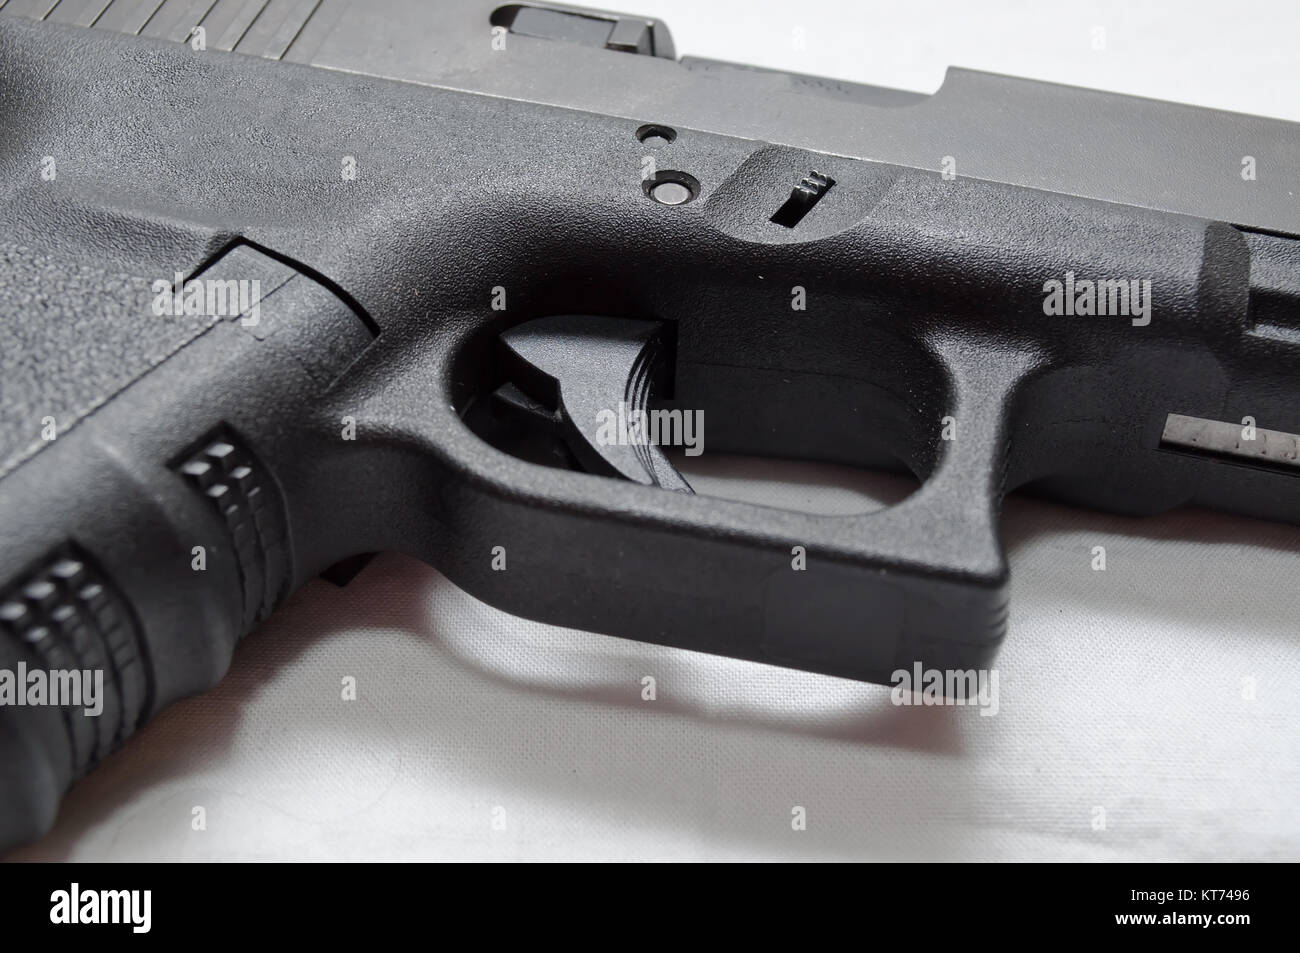 A close up of a black semi automatic pistol, showing the trigger, trigger guard, grip and ejection port - Stock Image